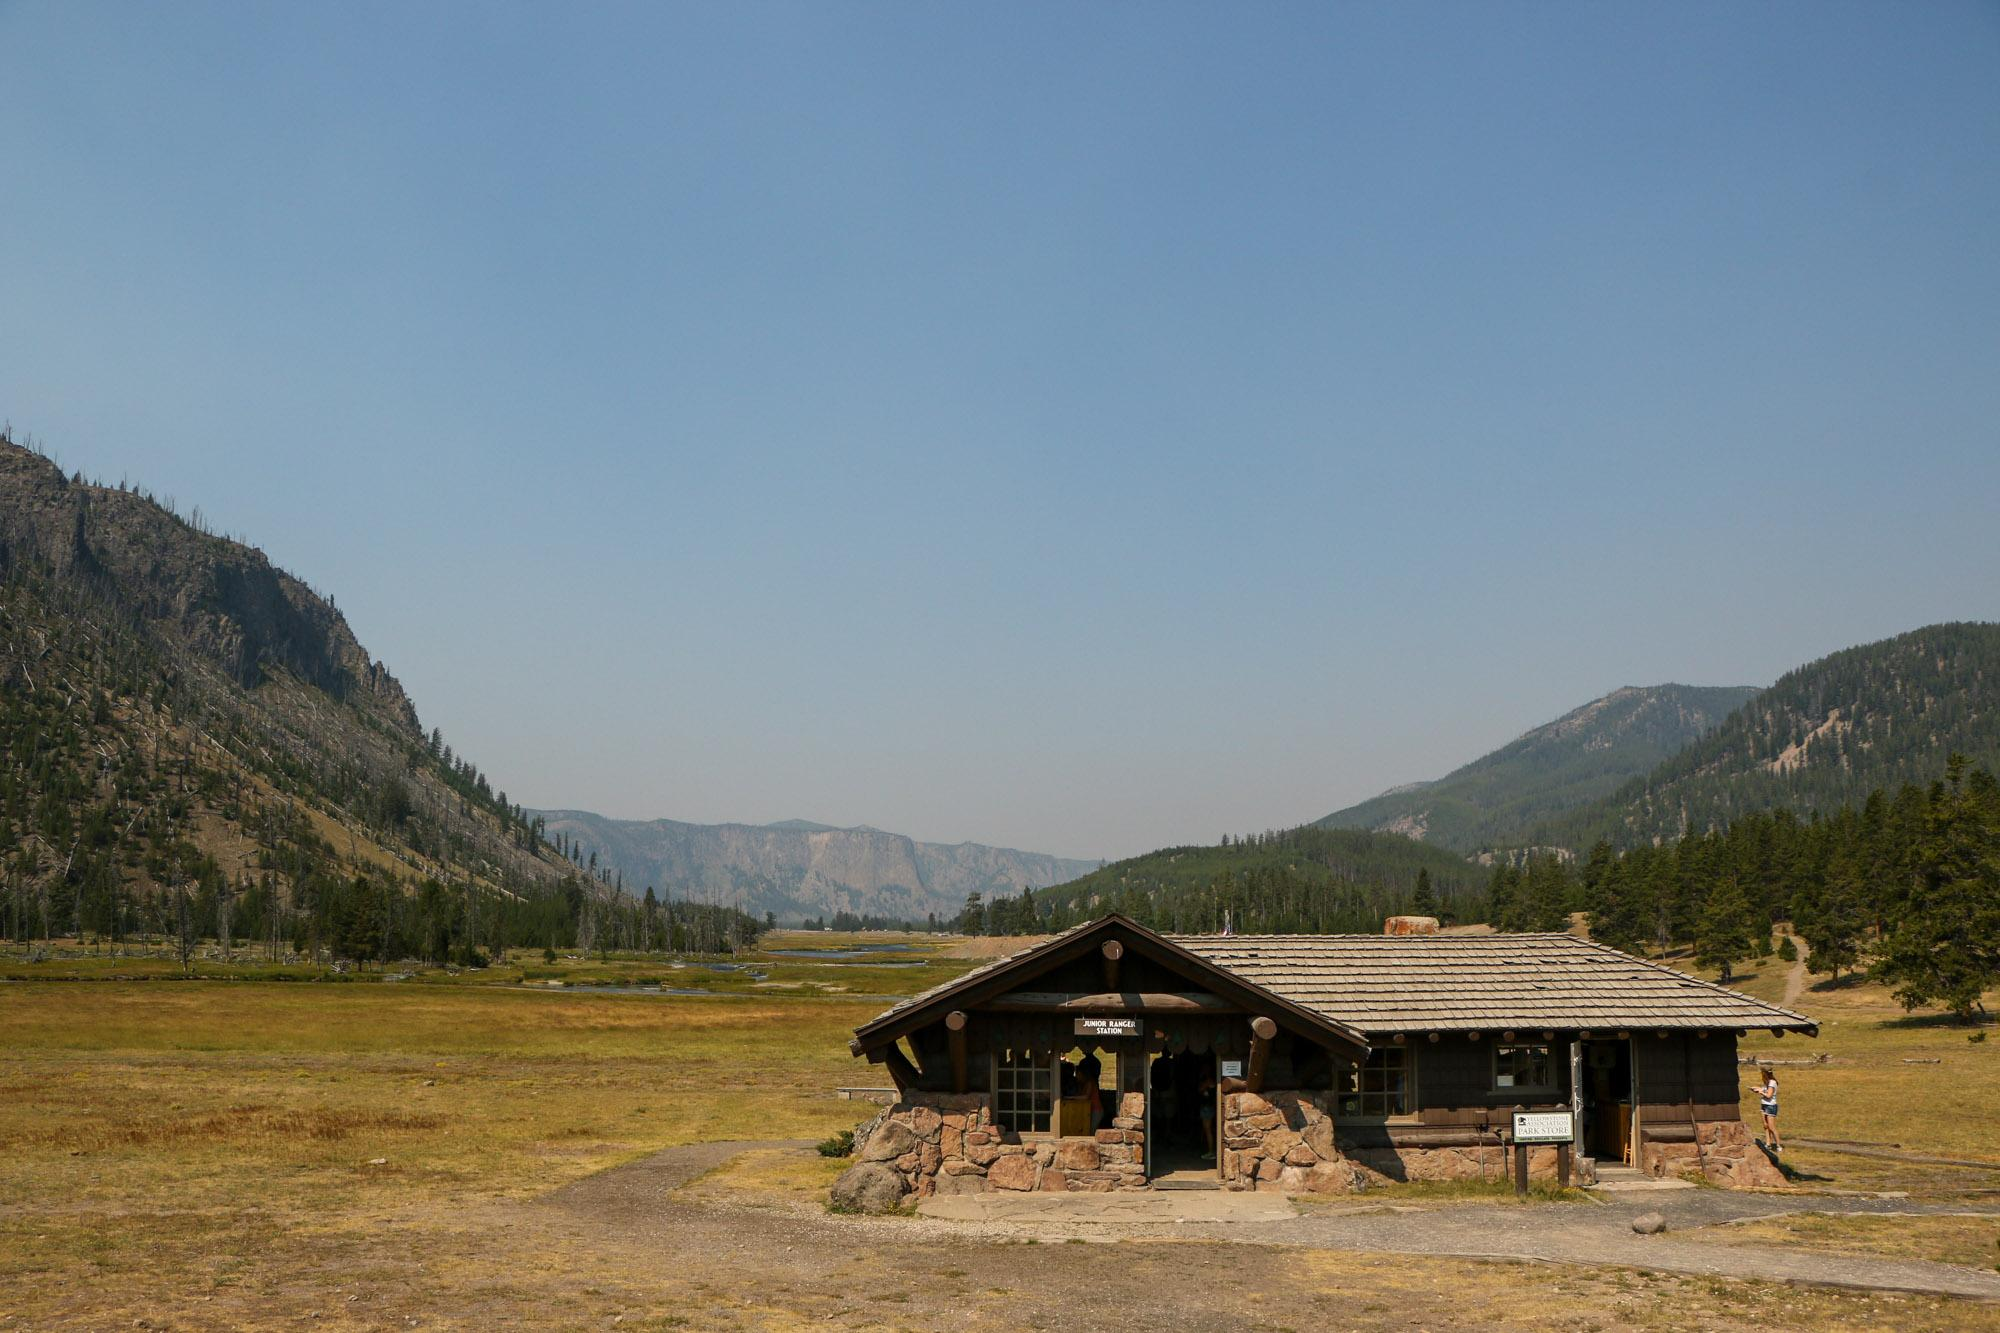 We attended a ranger-led program at this ranger station to complete our Junior Ranger program booklets!